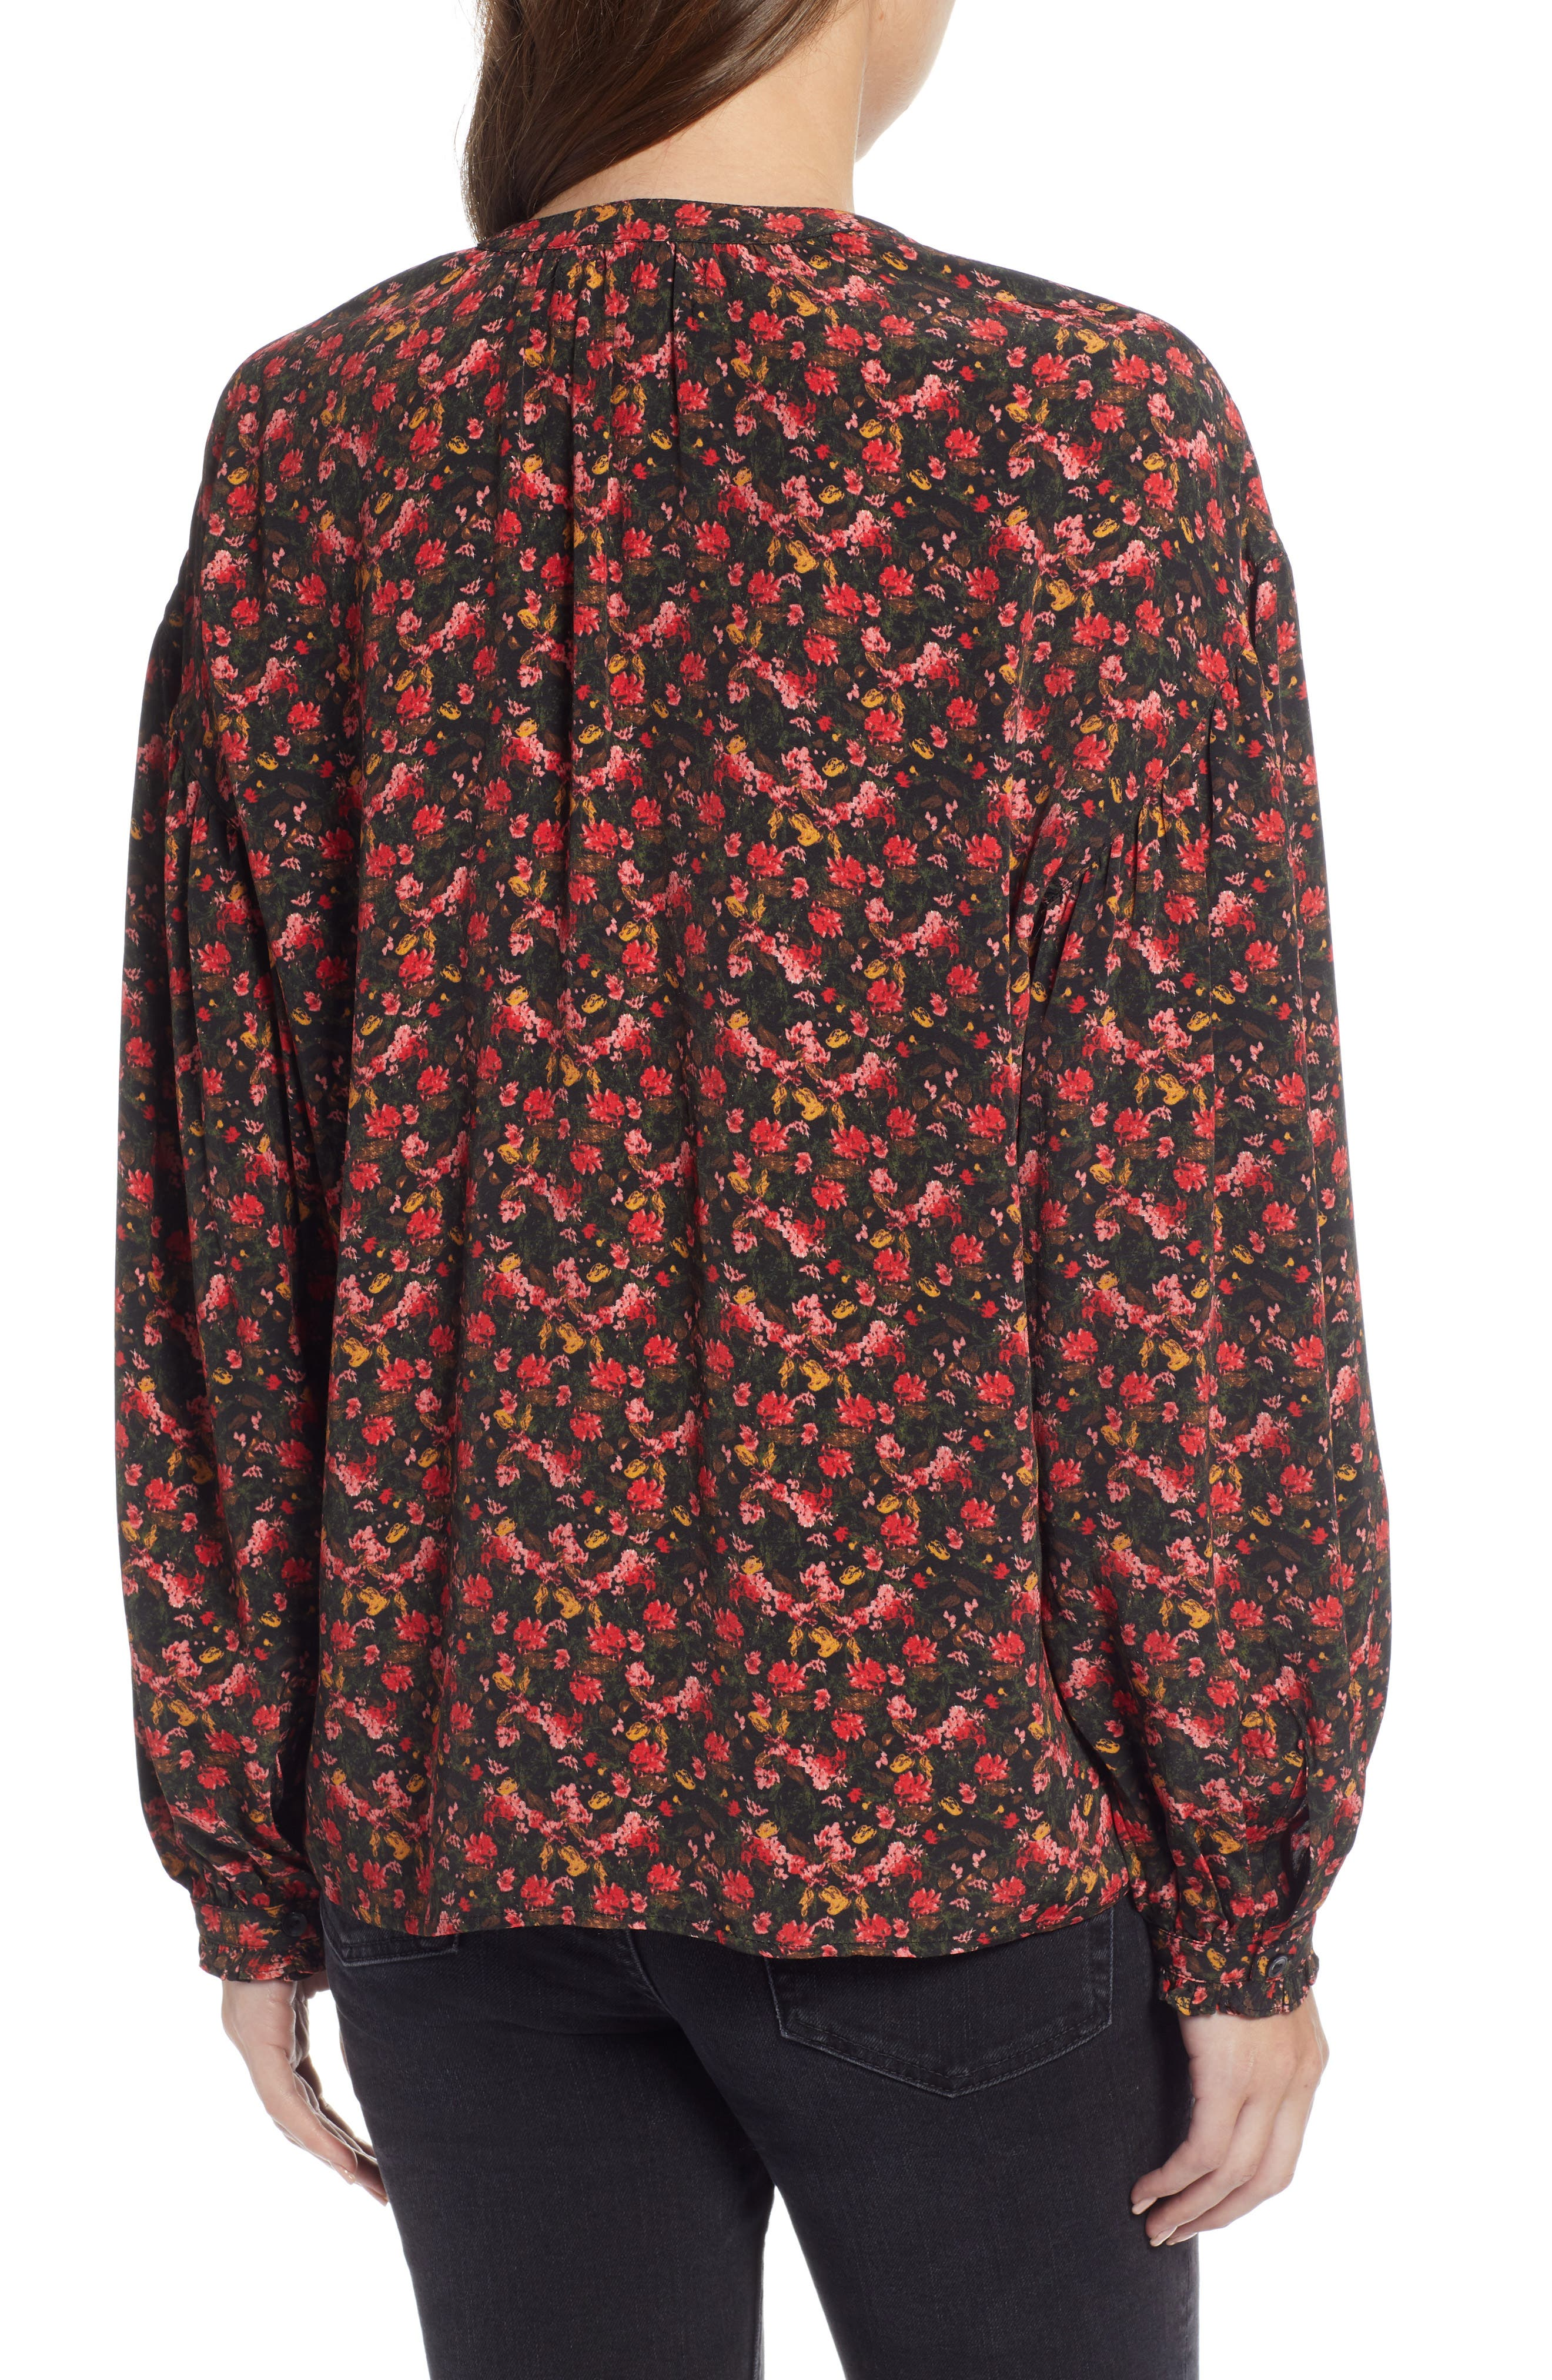 Easy Volume Top,                             Alternate thumbnail 3, color,                             RED BLAZE PAINTERLY FLORAL